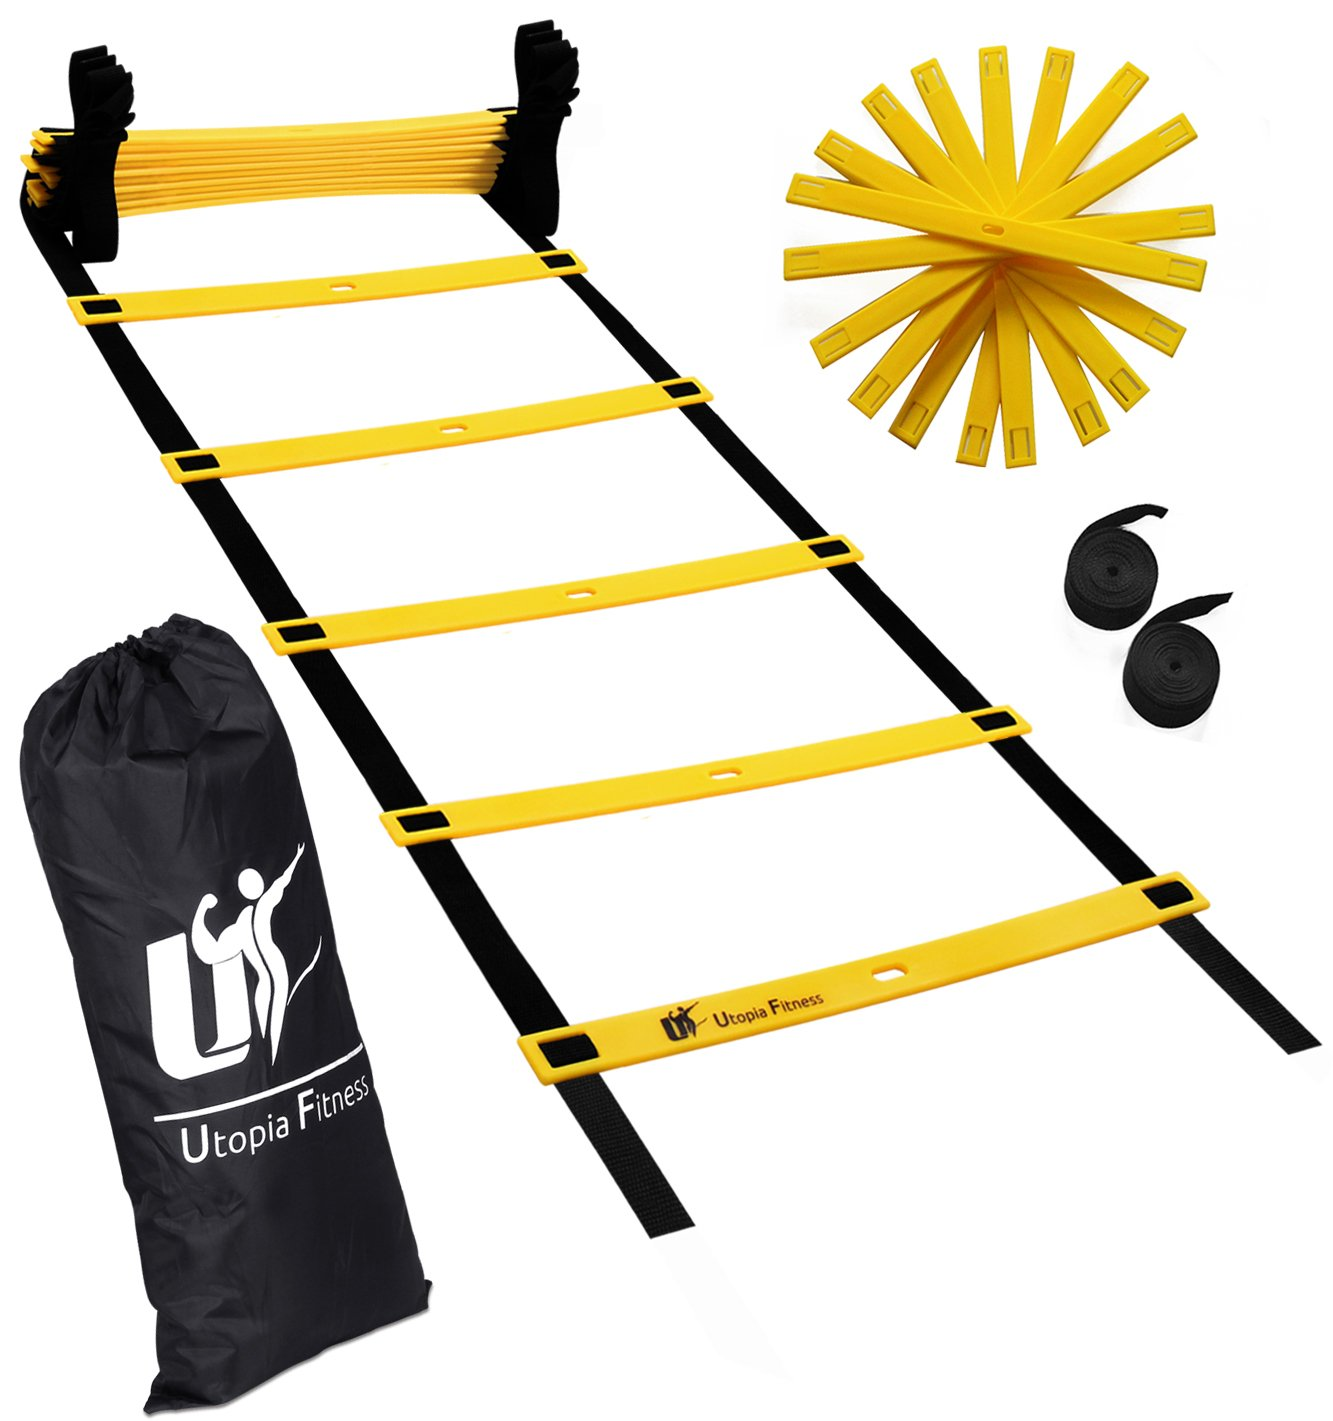 Utopia Fitness Agility Ladder for Fitness & Training - Training Ladder With Adjustable 12 Rungs Anti-Crack Design Speed Ladder - Fitness Ladder With Carrying Bag